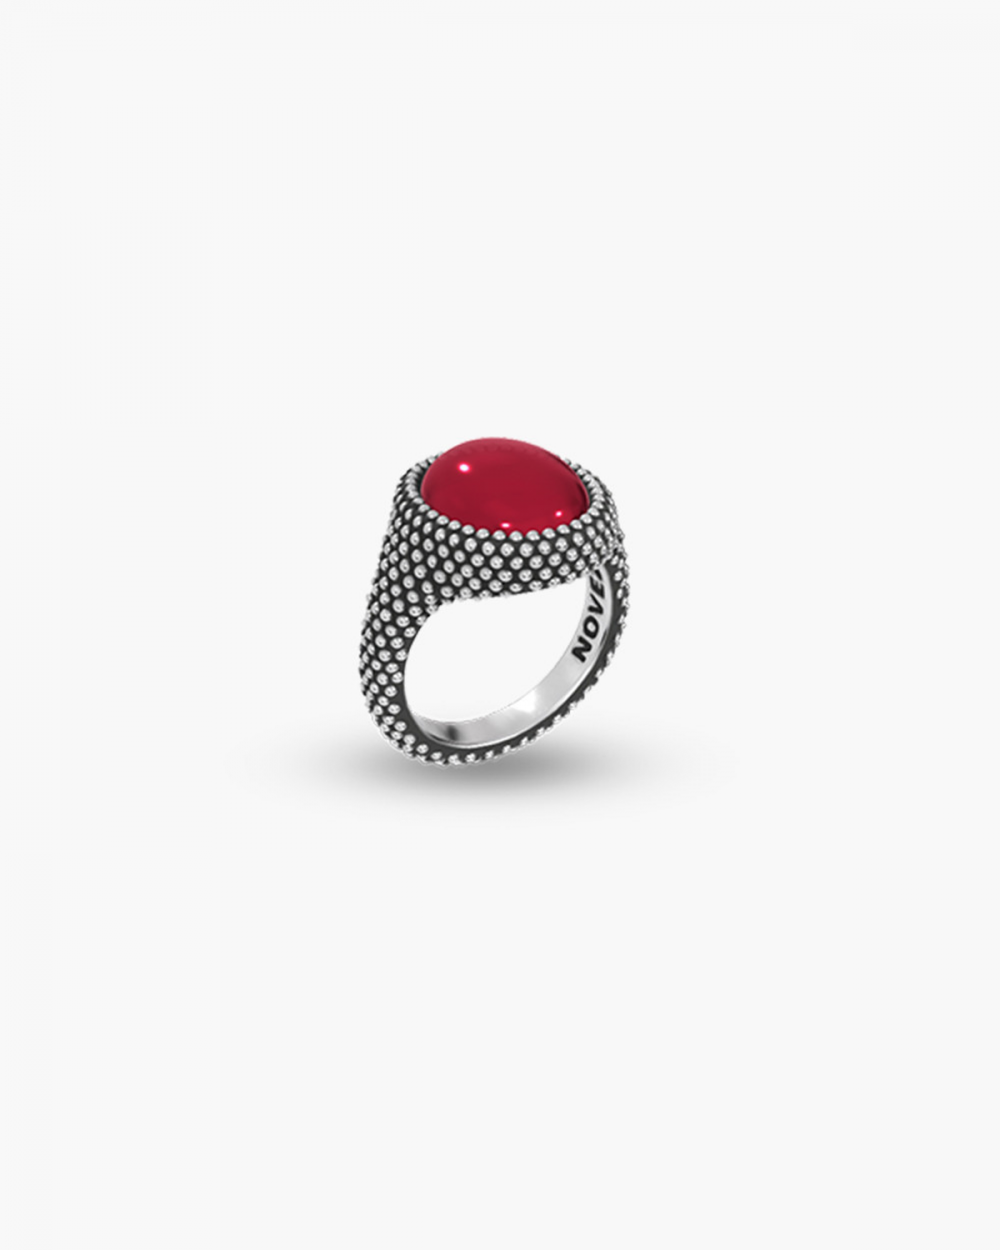 MYNOVE25 DOTTED OVAL SIGNET RING WITH STONE NOVE25